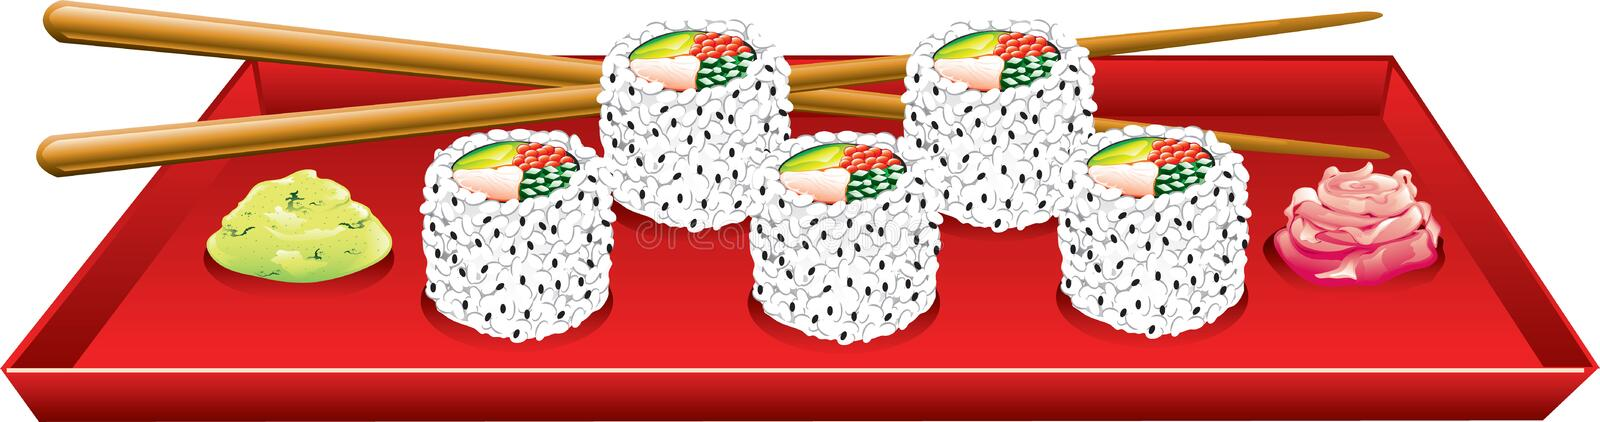 Download California rolls stock illustration. Image of spring - 15904899